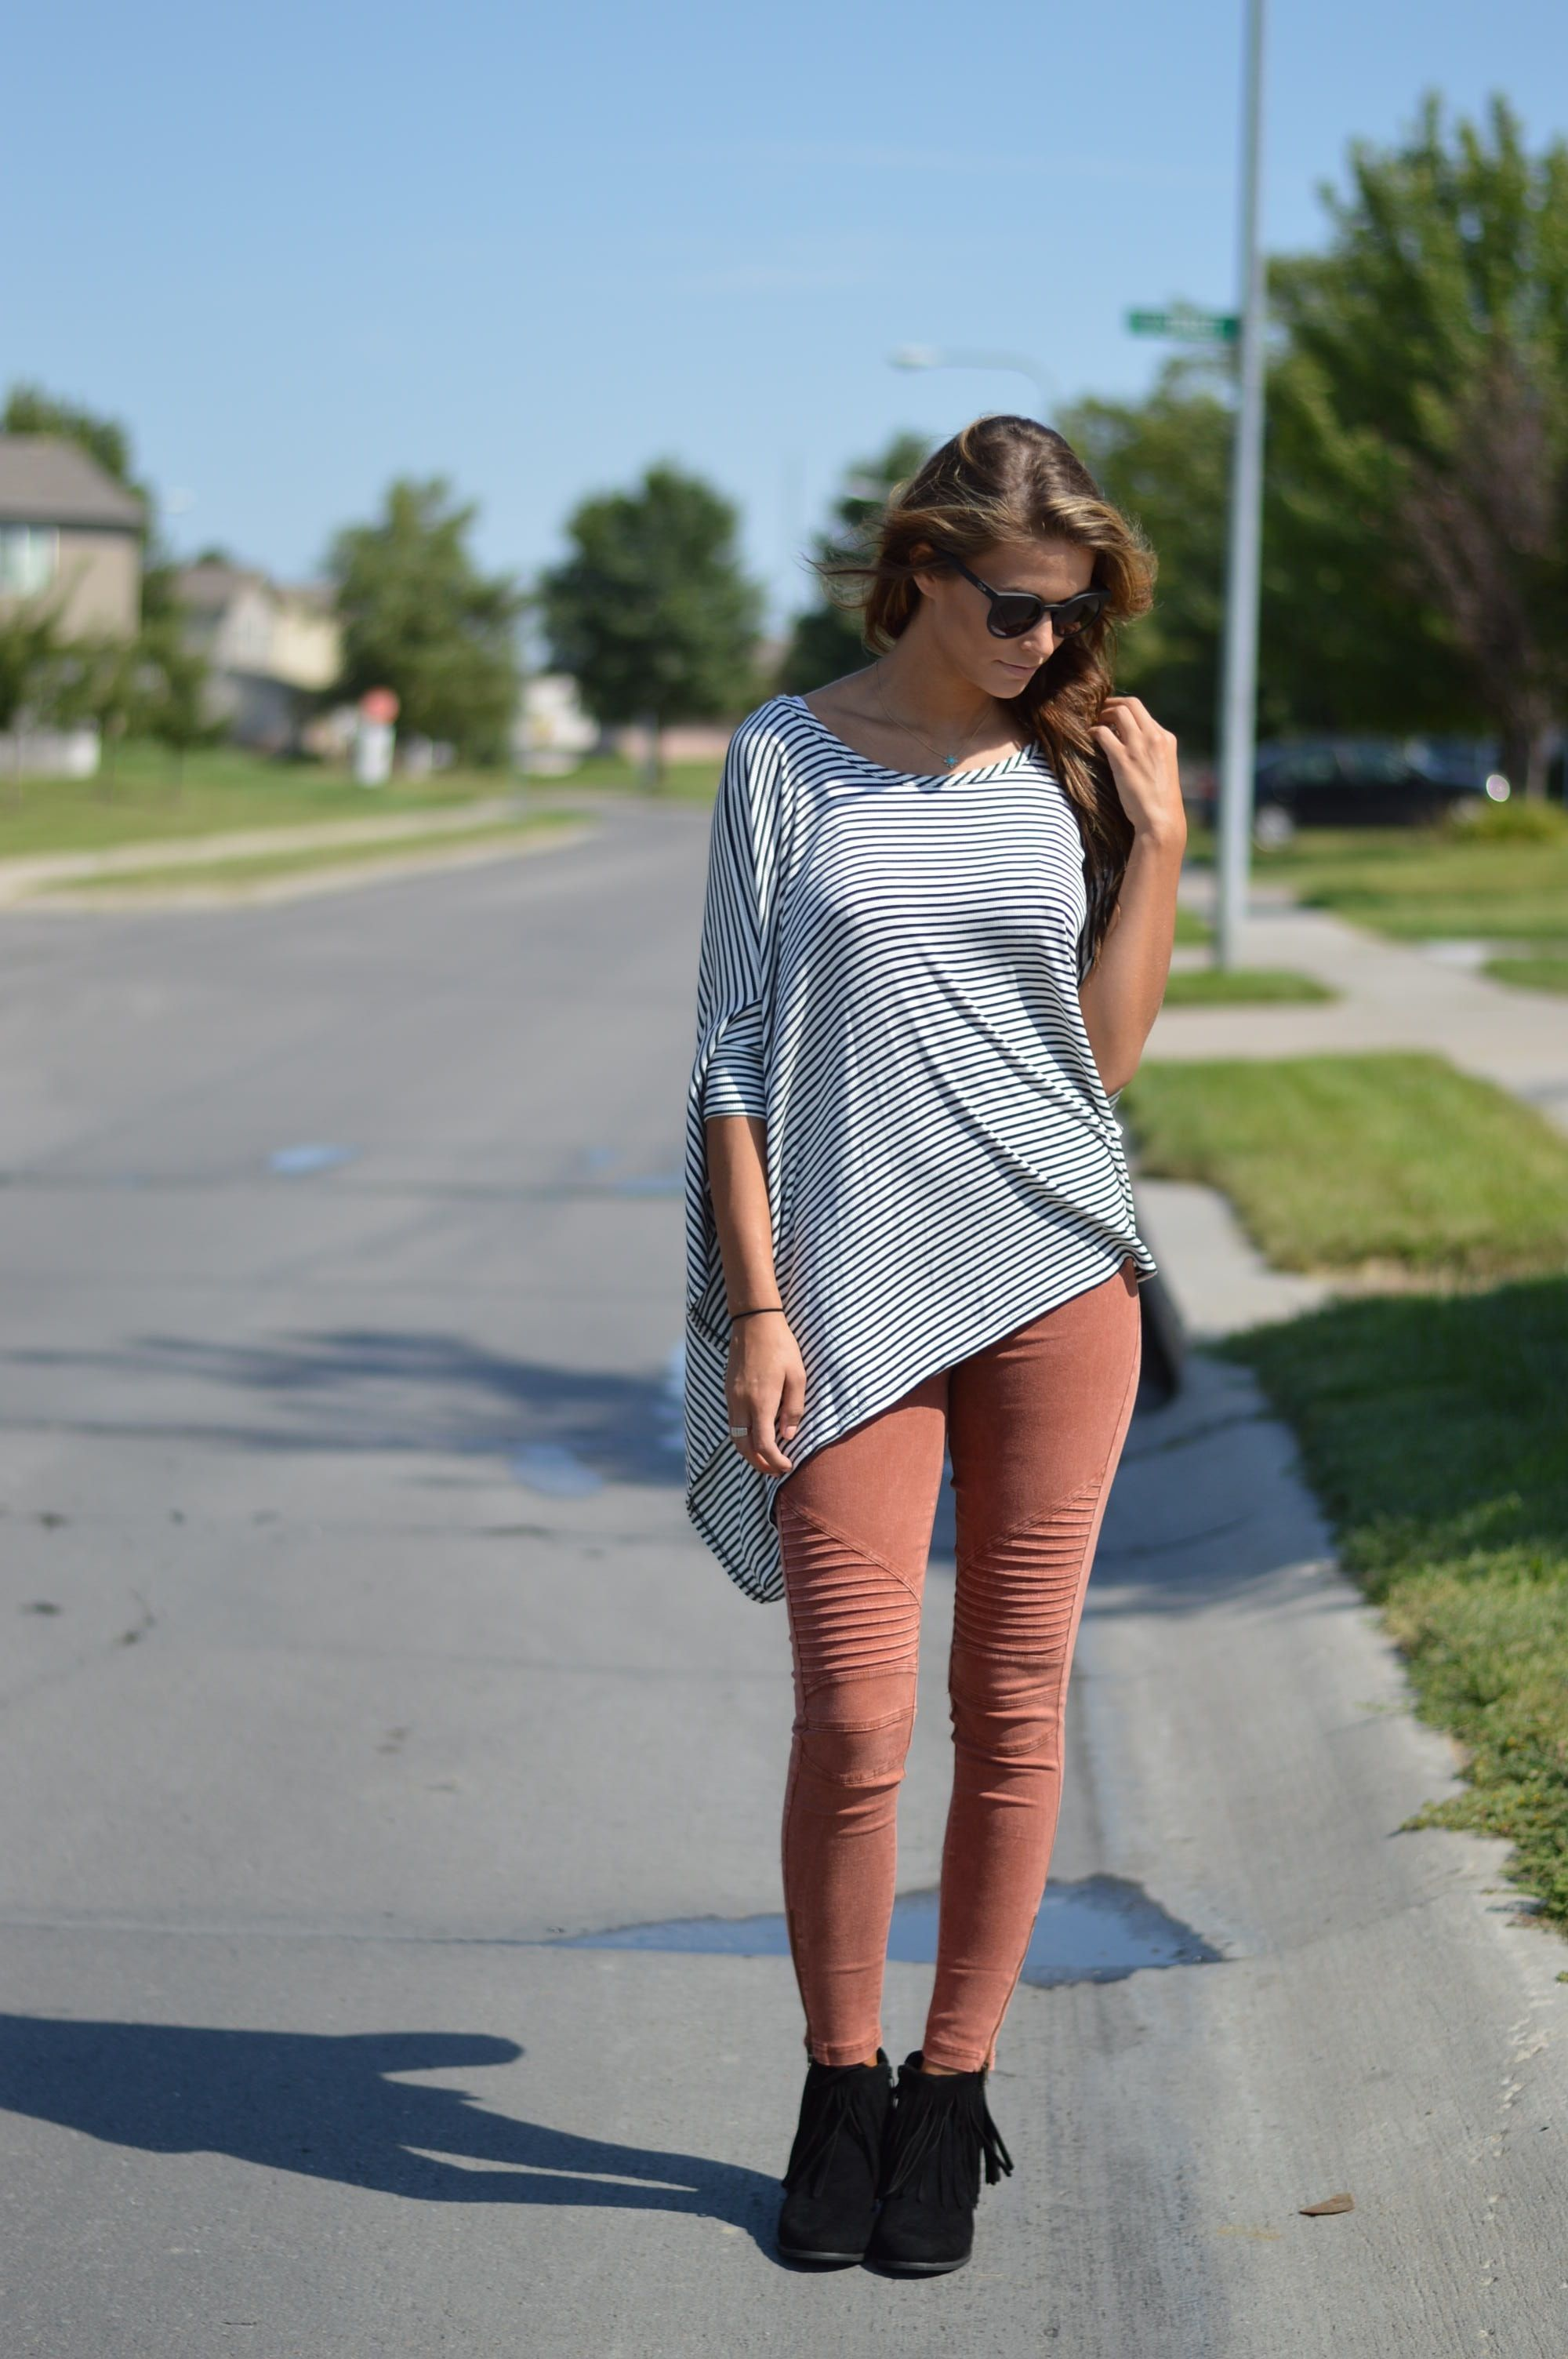 Black & White Stripe Flow Top. Half Sleeve. Pair with your favorite pair of jeans or colored skinnys. Cozy and comfy fall fashion. Wear it with leggings too! Fall Fashion from Foi Clothing.